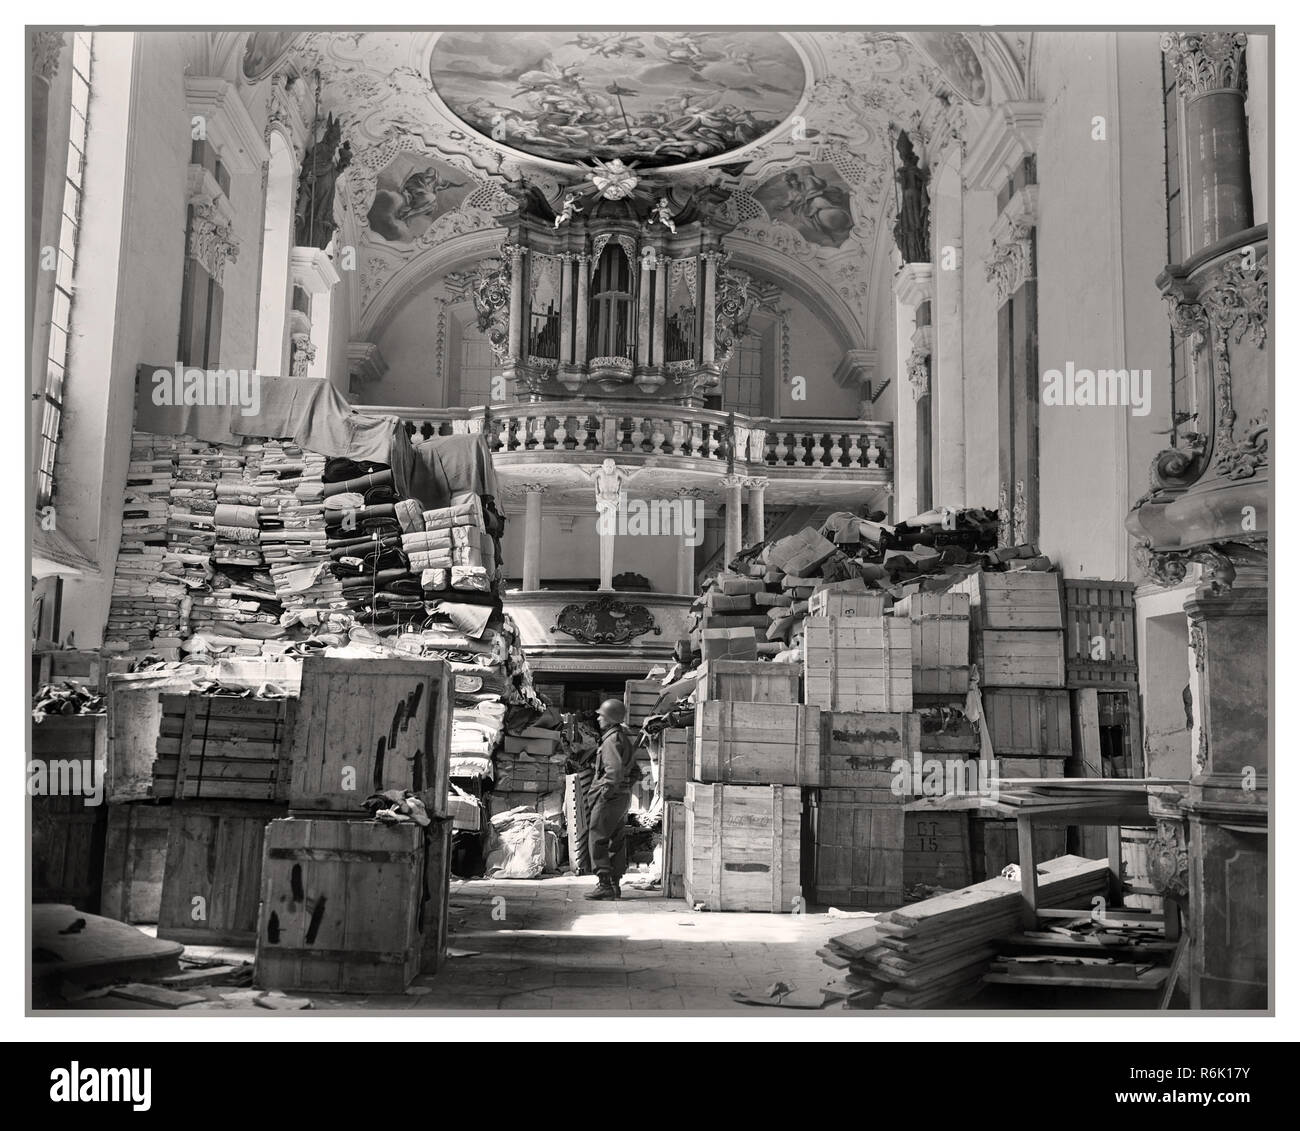 "Vintage Nazi Loot Plunder WW2 World War II American military   ""Monument Men "" encountered German Nazi loot repositories such as this one all across Europe. Here, piles of boxes, records, and clothing are guarded by an American GI inside a church in Ellingen, Germany. The church had been used by the Nazis as a secret depot for clothing 'requisitioned' from Belgium France and Holland 1945 Stock Photo"